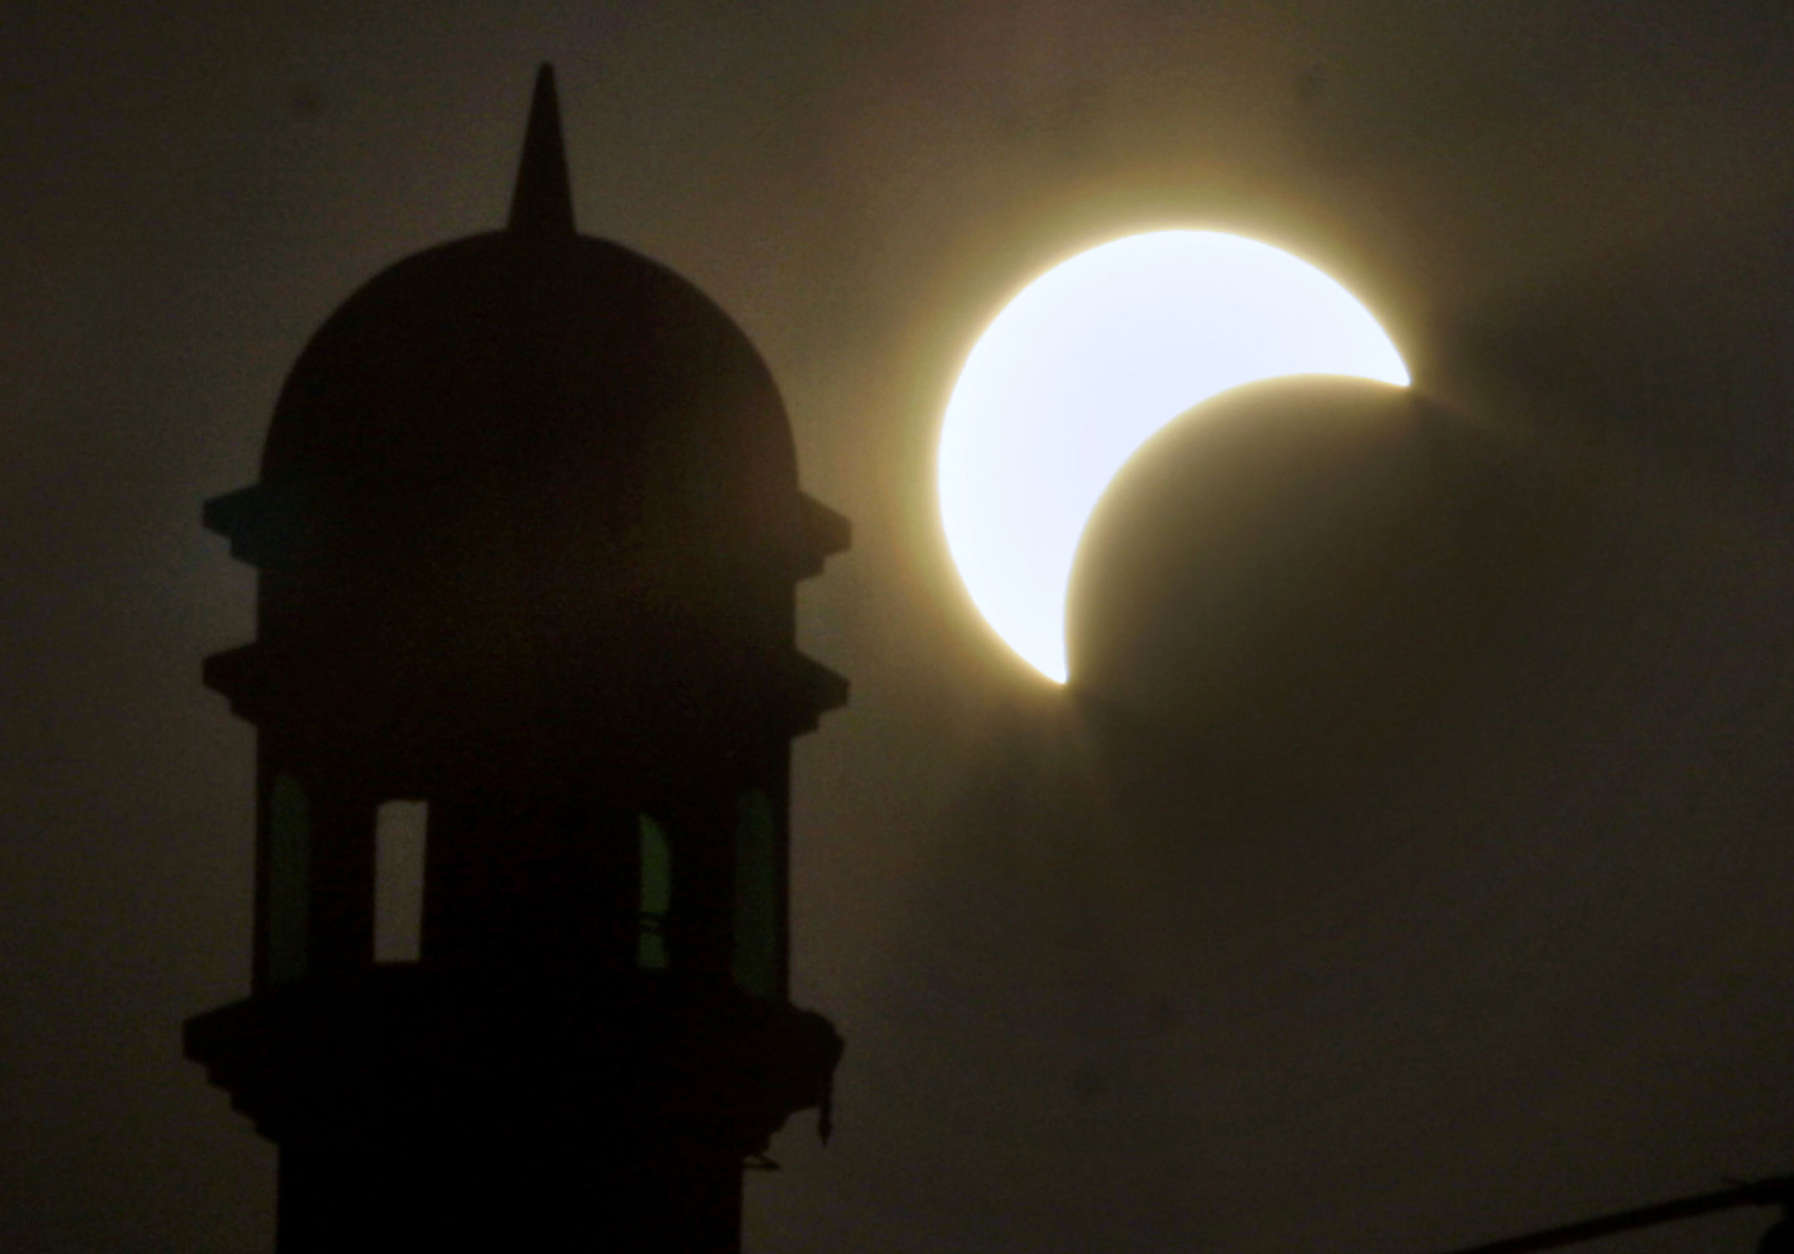 A partial solar eclipse is seen near the minaret of a mosque in Rawalpindi, Pakistan on Wednesday, July 22, 2009. The longest solar eclipse of the 21st century pitched a swath of Asia from India to China into near darkness Wednesday as millions gathered to watch the phenomenon. (AP Photo/Anjum Naveed)